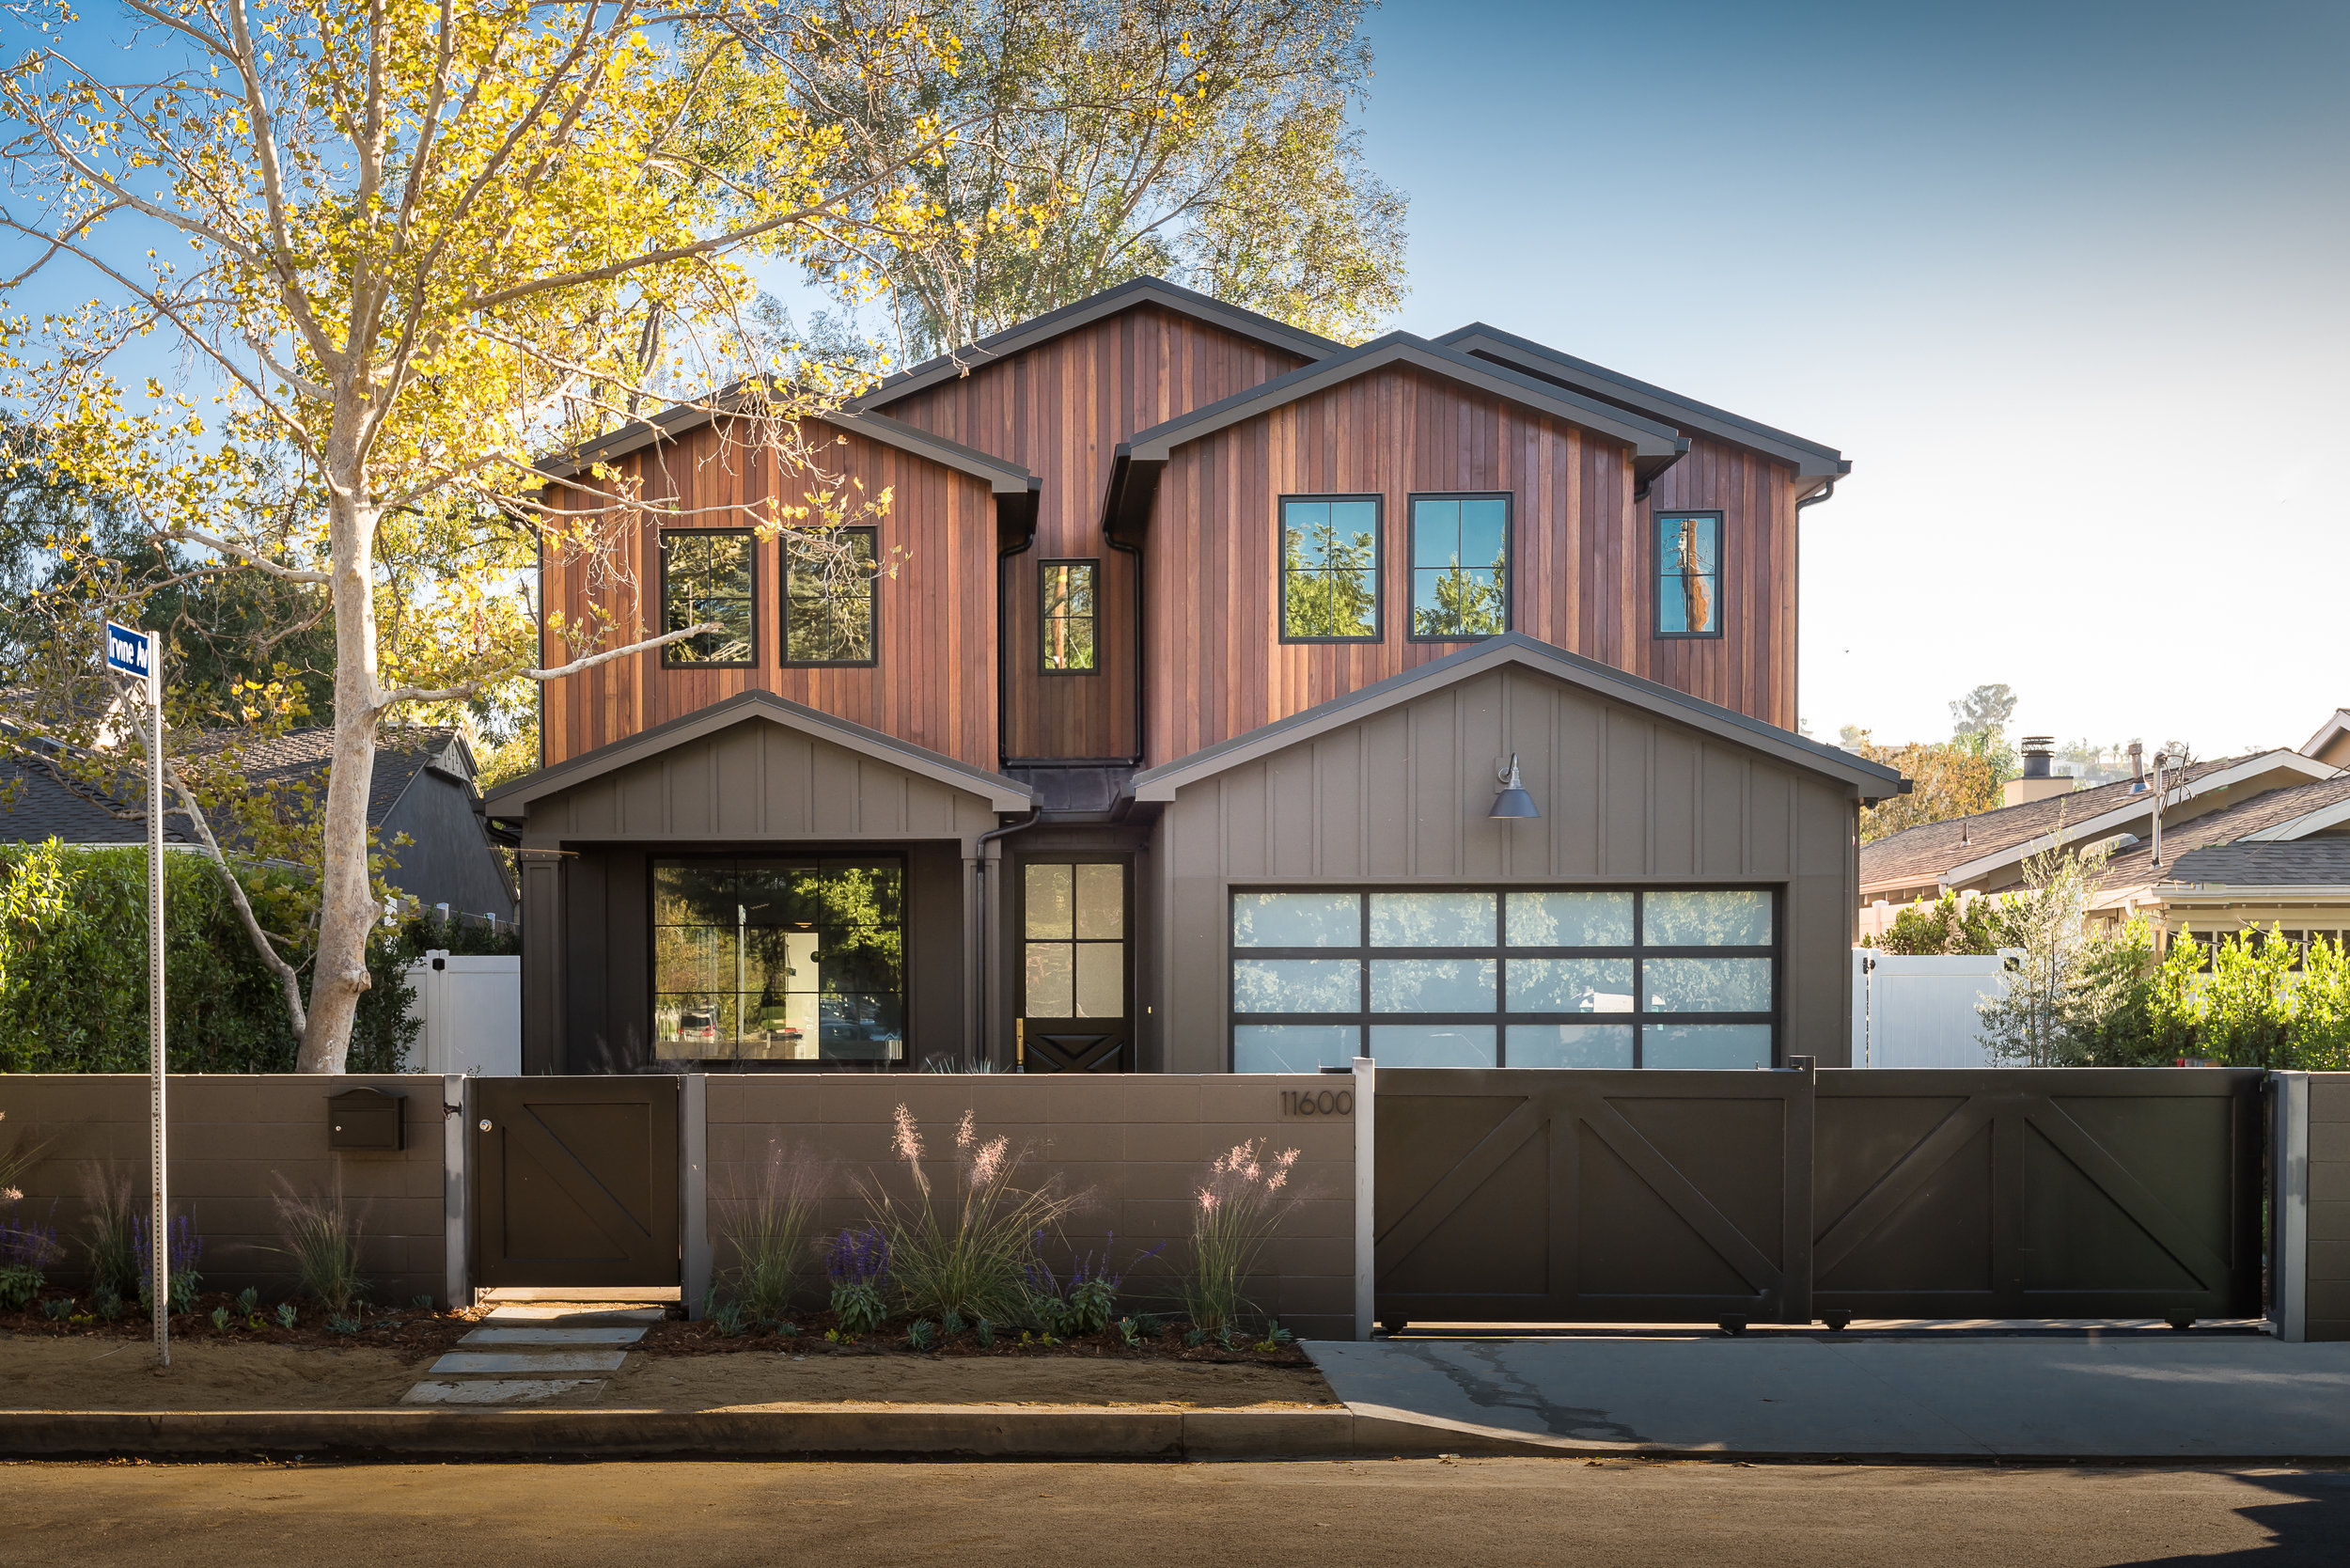 ACAMA STREET | STUDIO CITY   Modern Craftsman with stunning ironwood gable design. The epitome of exceptional workmanship and unparalleled quality for this style of luxury construction.